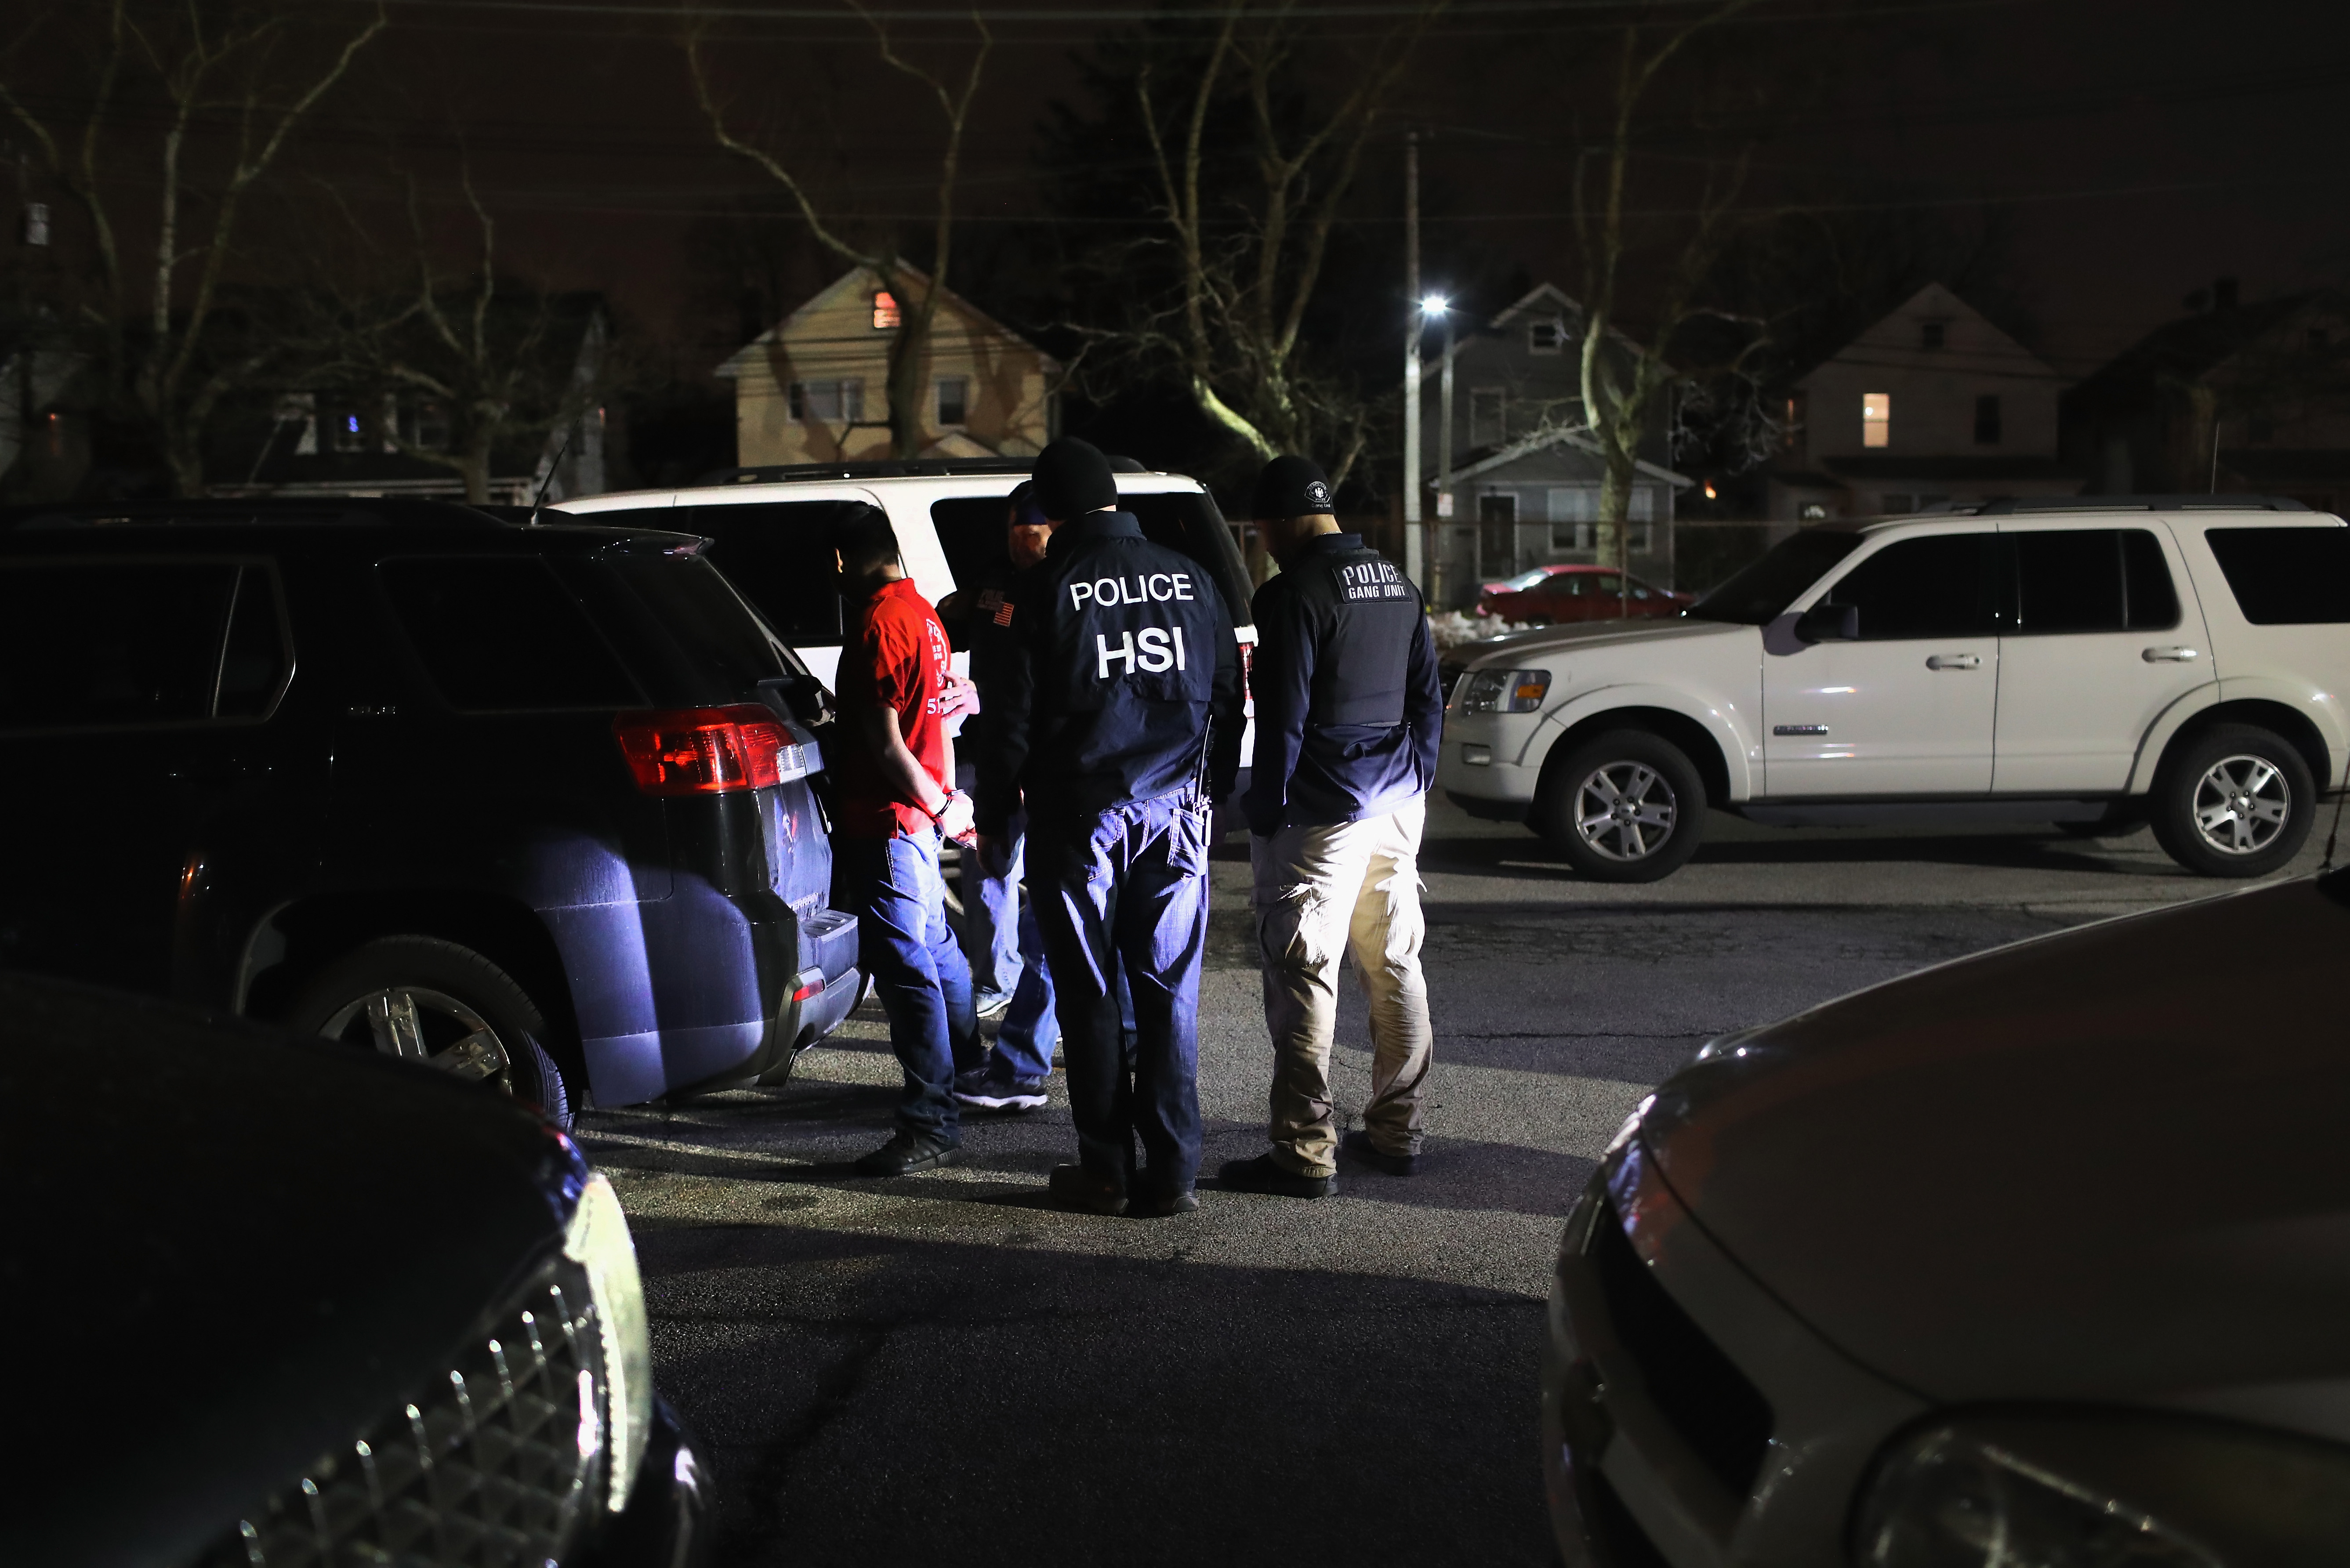 U.S. federal agents arrest a suspected gang member late on March 28, 2018, in Hempstead, New York. (Getty)